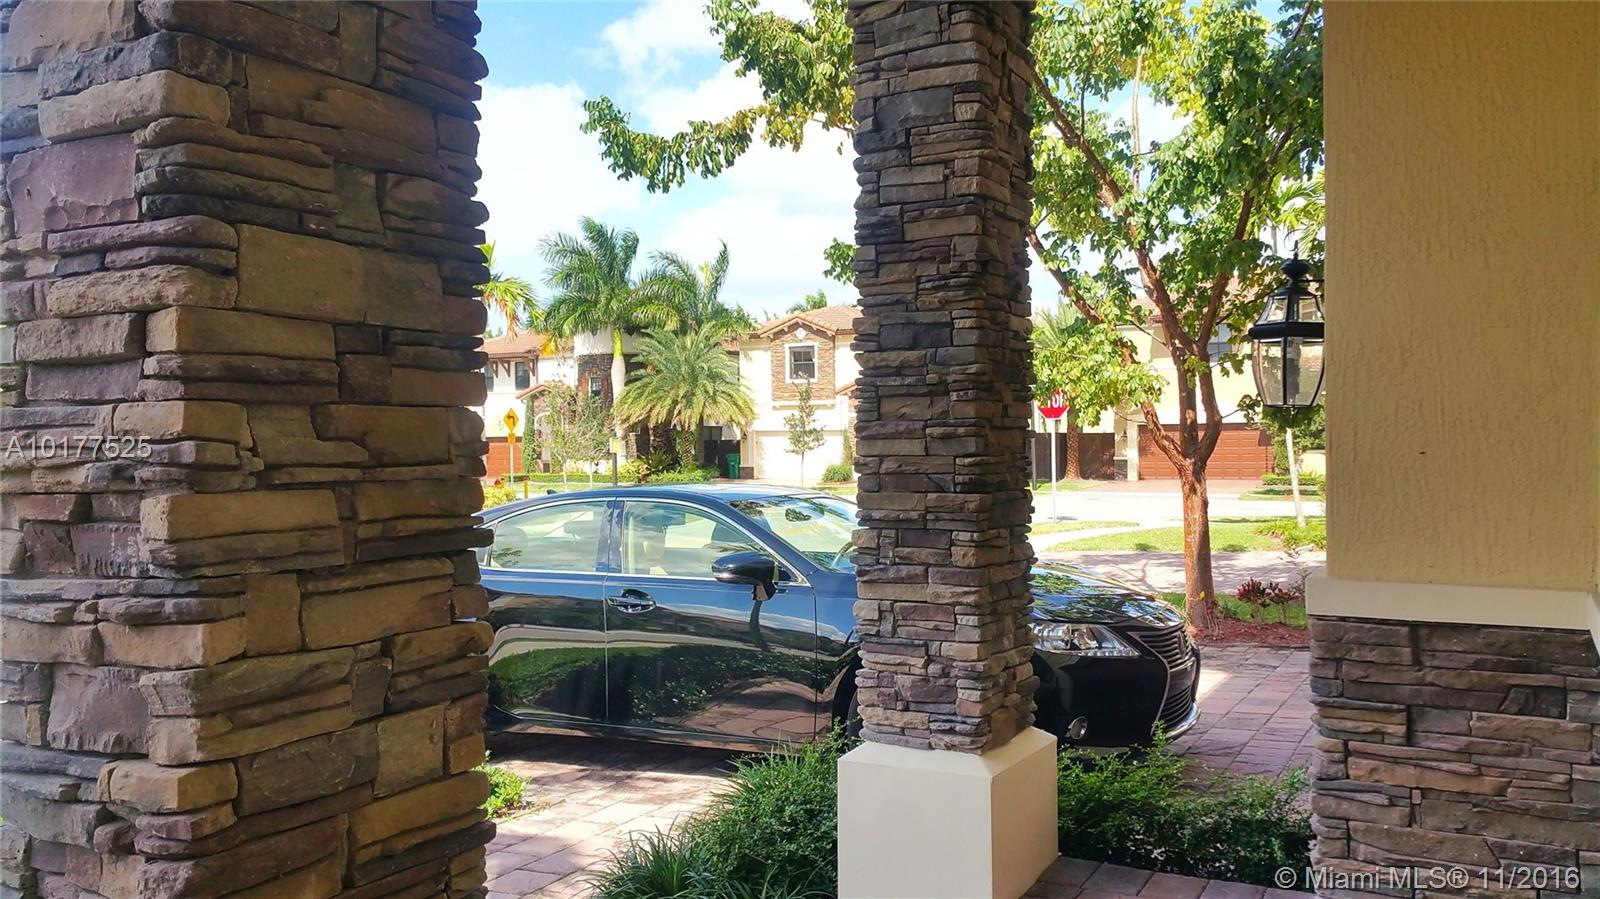 8915 NW 99th Ave, Doral , FL 33178